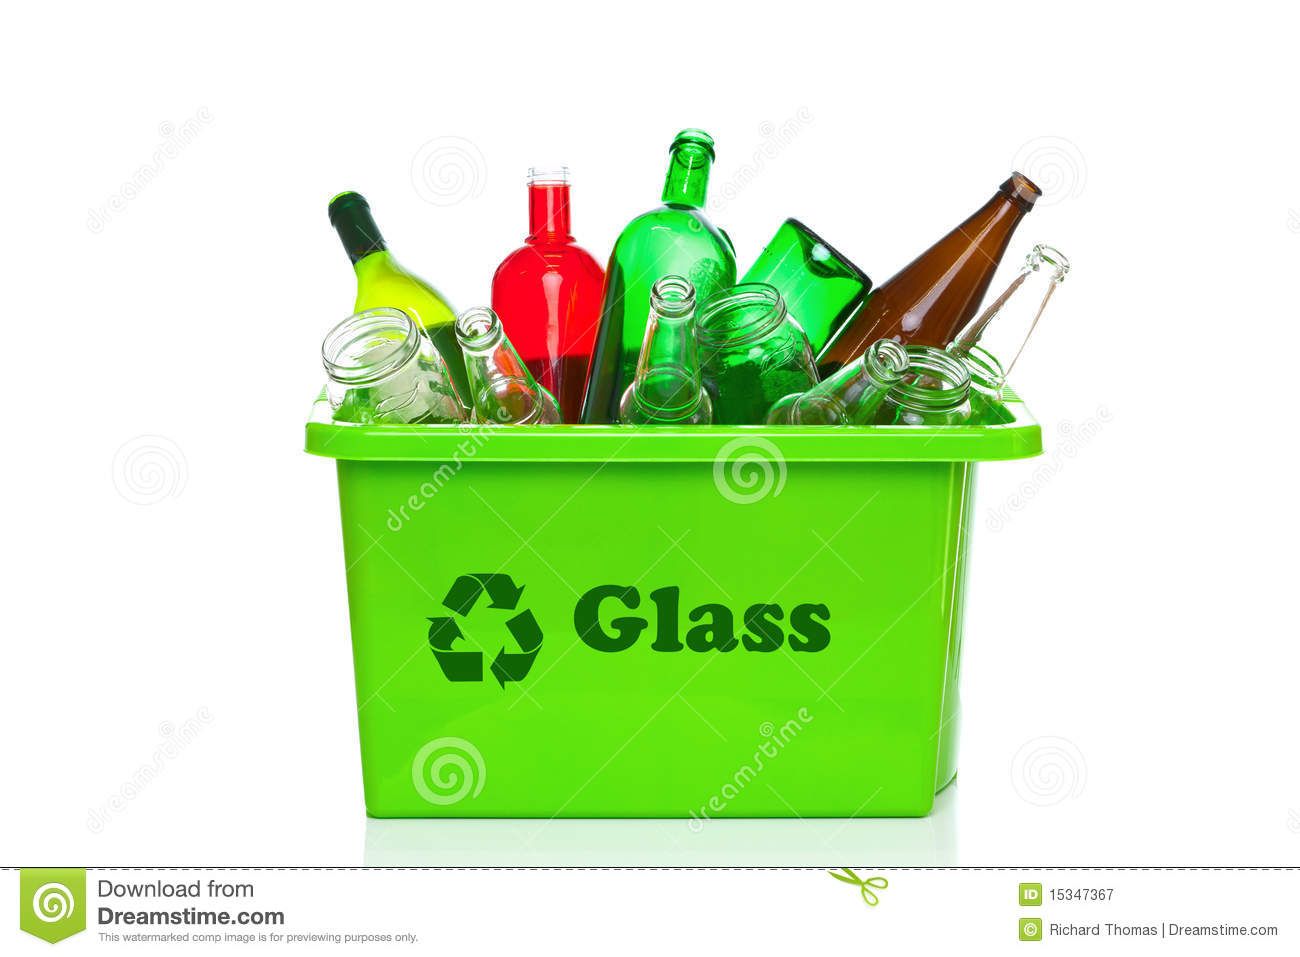 Free Stock Photography  Green glass recycling bin isolated on whiteGlass Recycling Bin